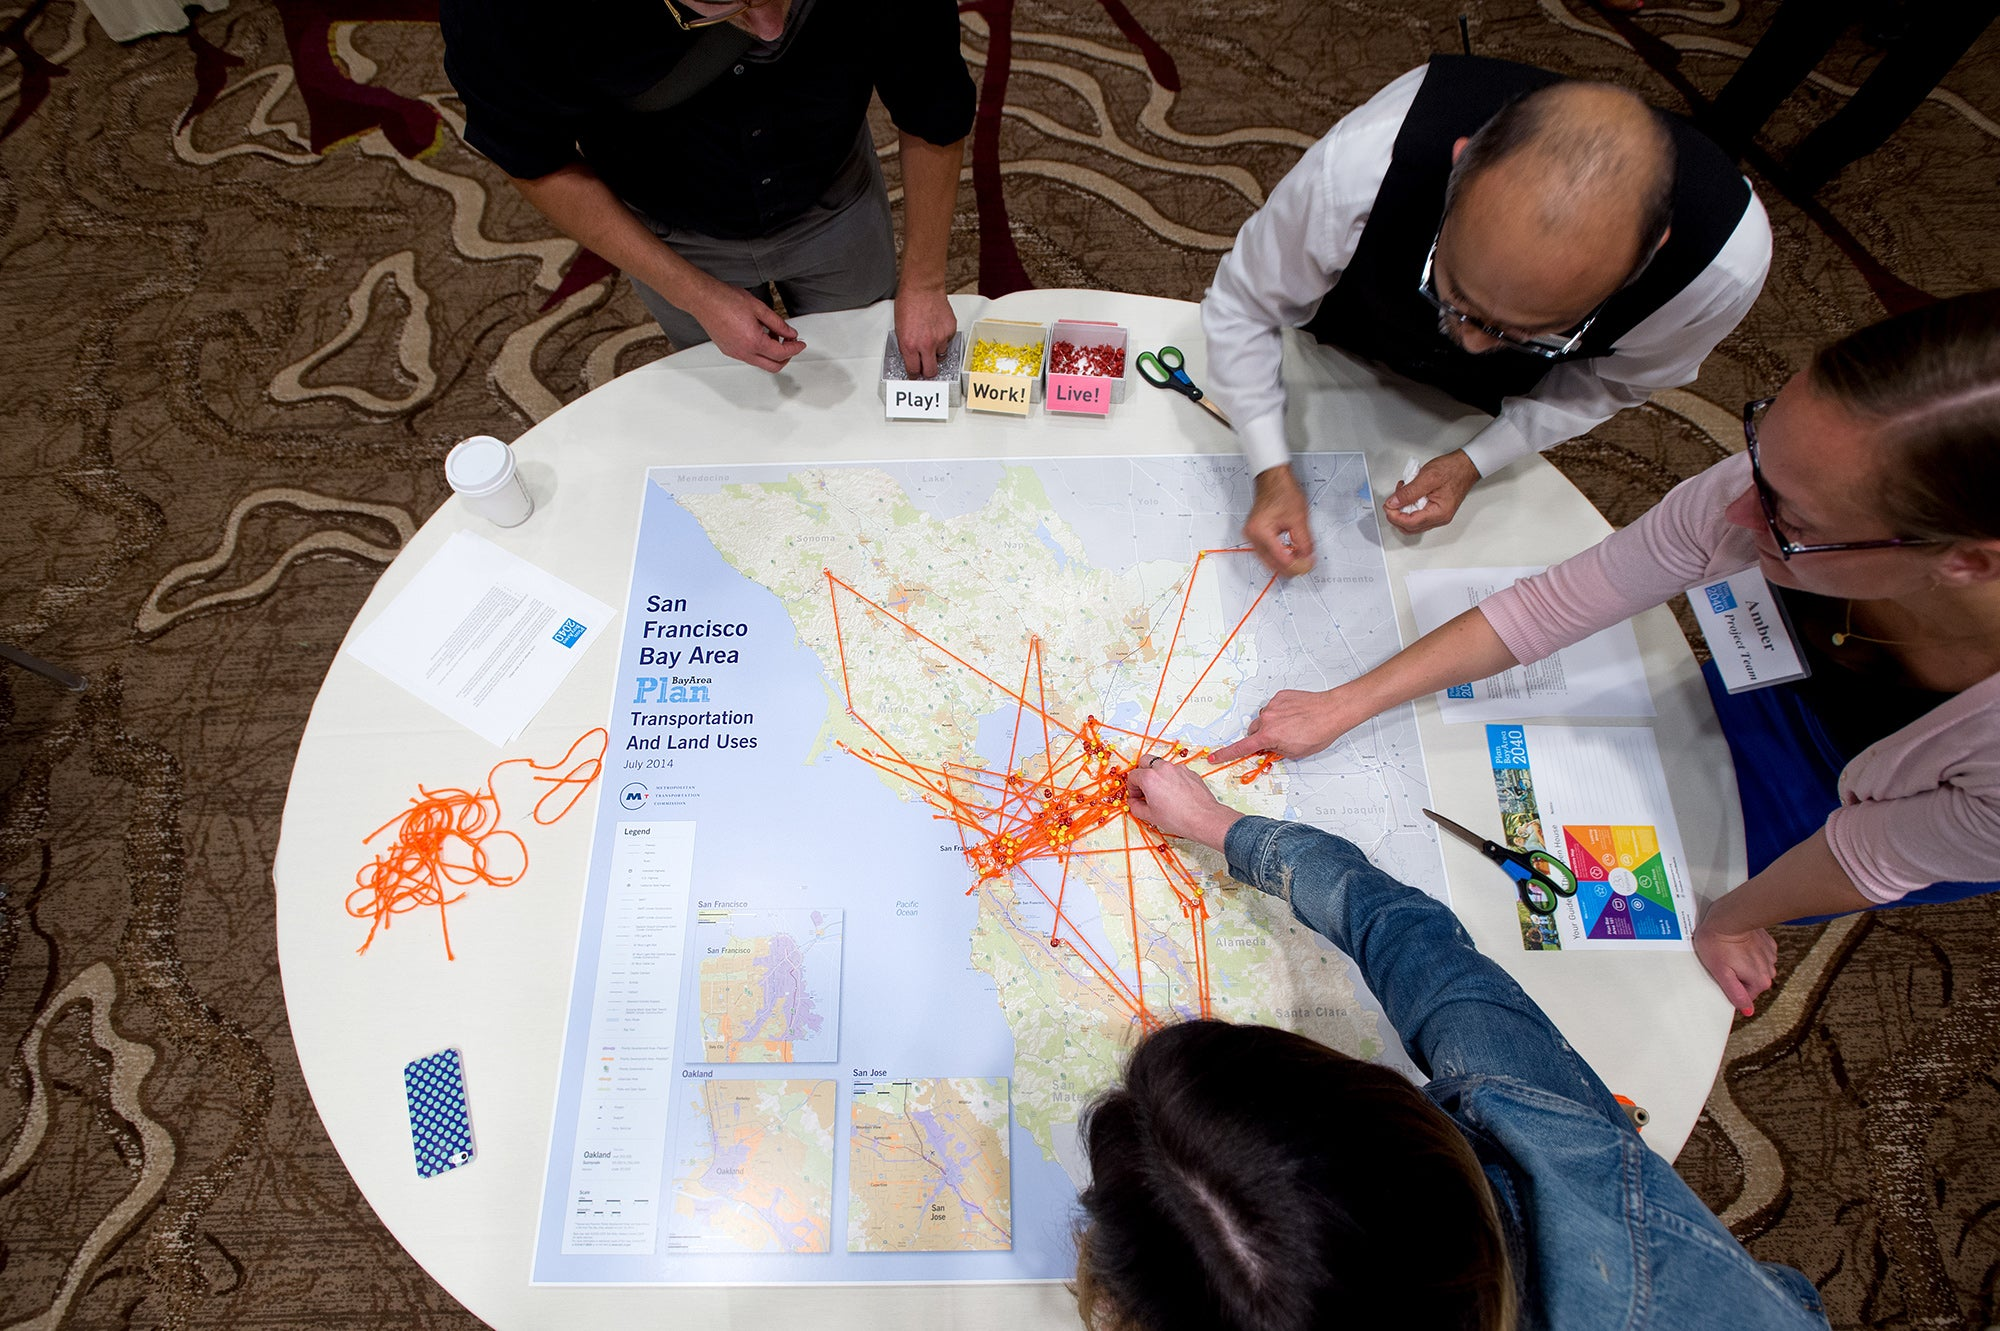 The live-work-play mapping exercise